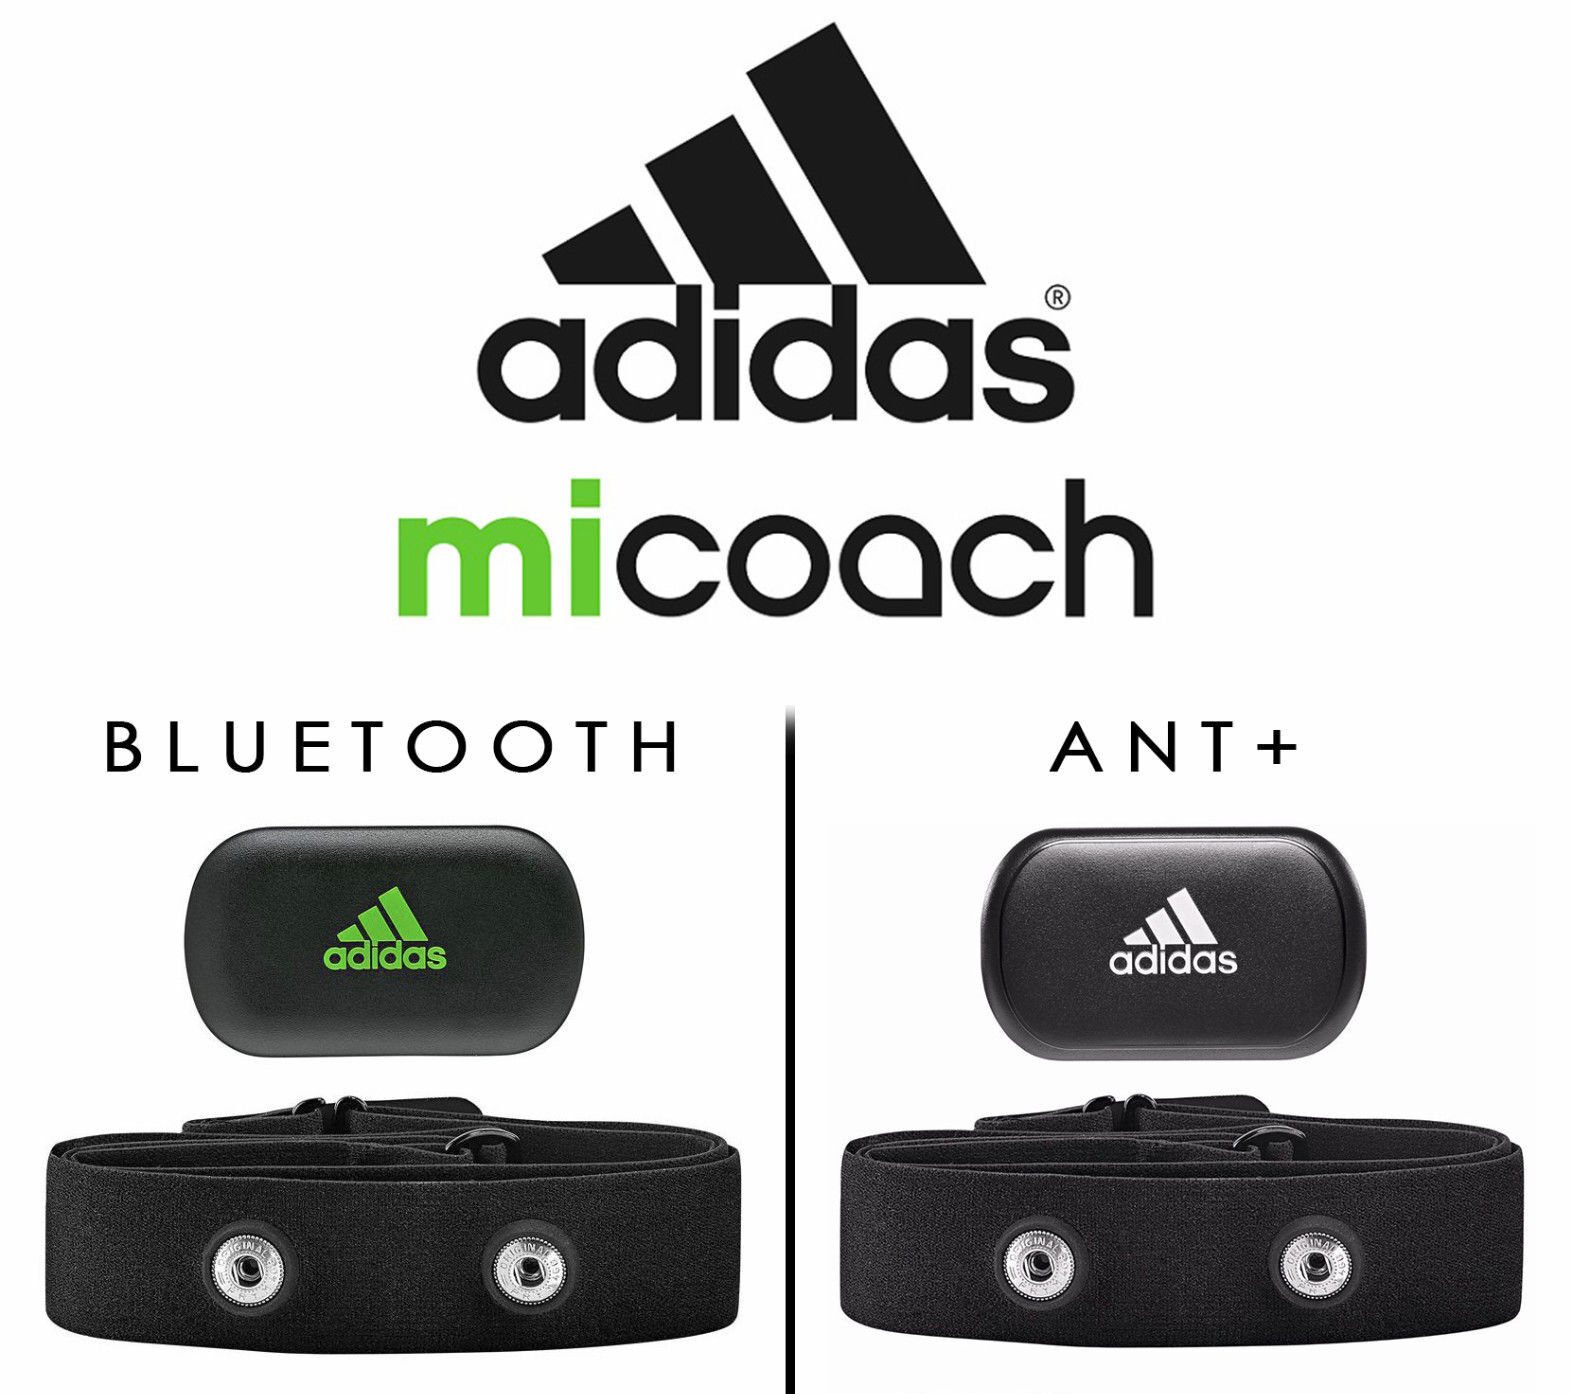 ADIDAS MICOACH DRIVERS FOR WINDOWS DOWNLOAD